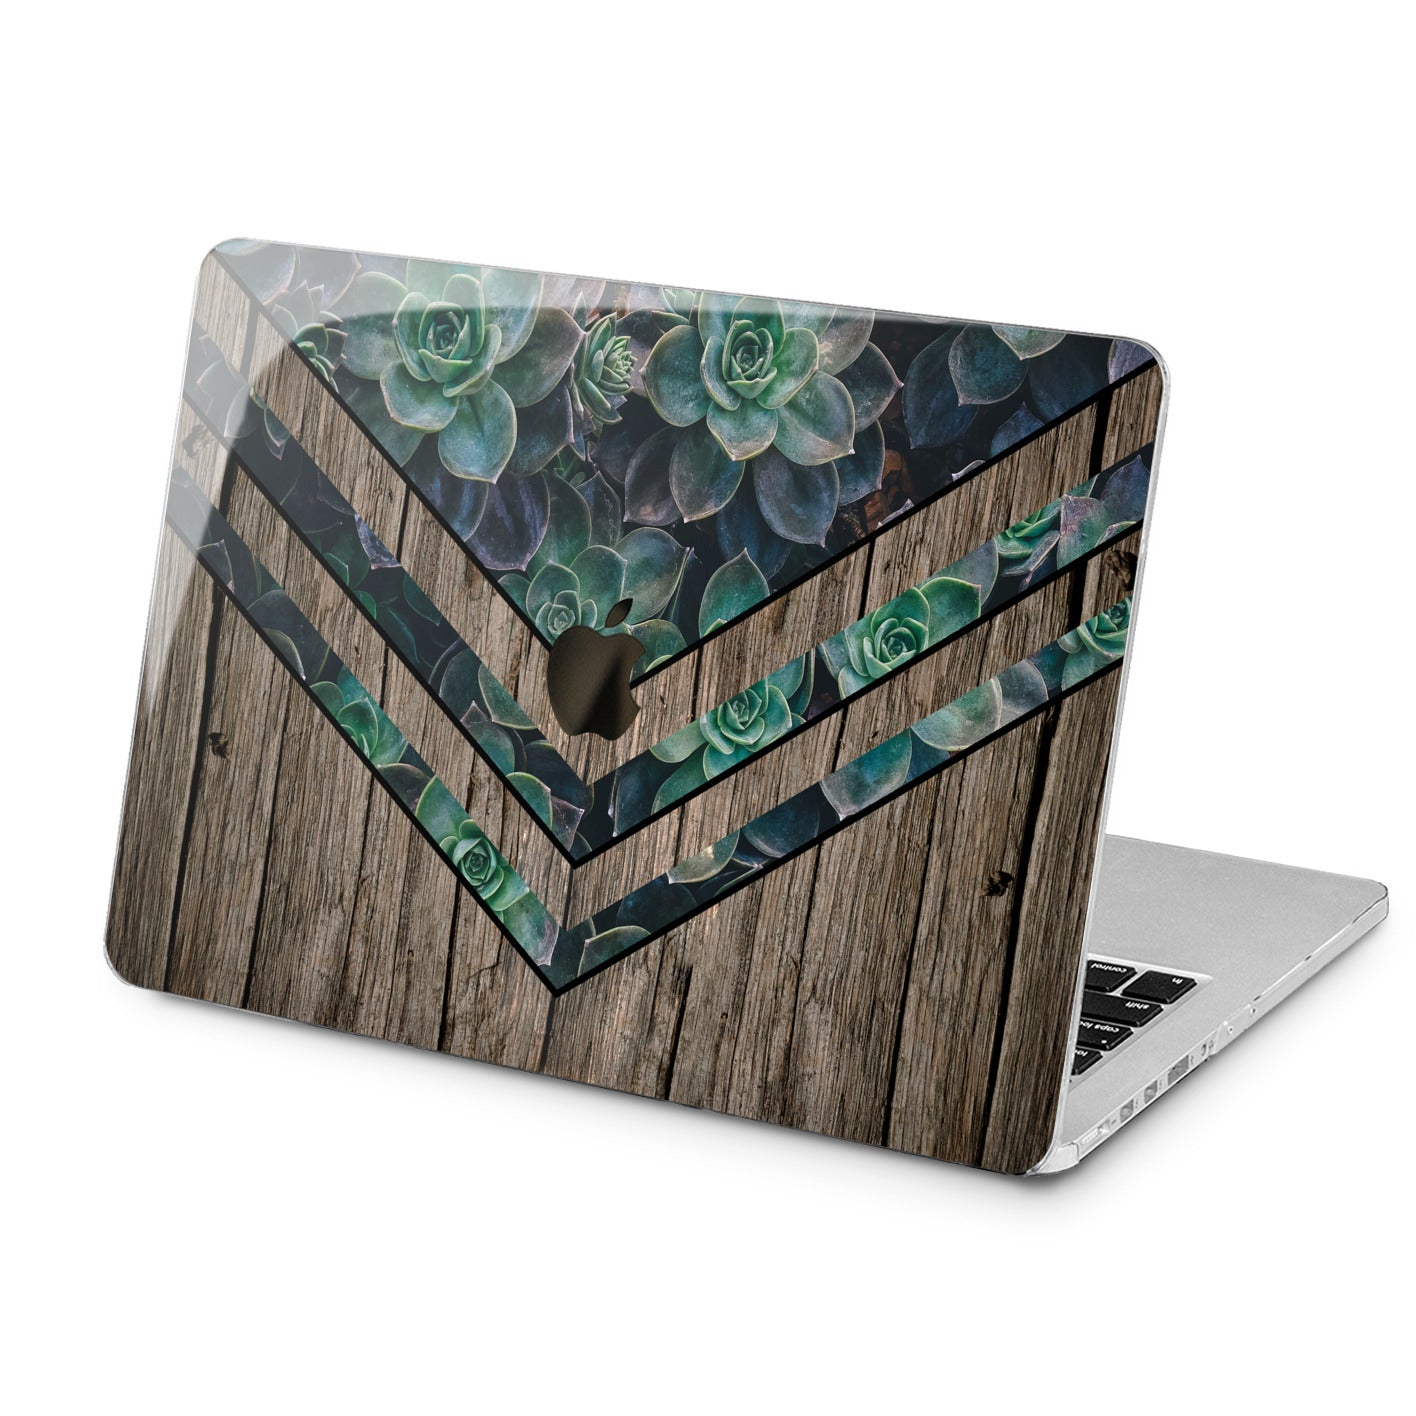 Lex Altern Lex Altern Green Plants Theme Case for your Laptop Apple Macbook.